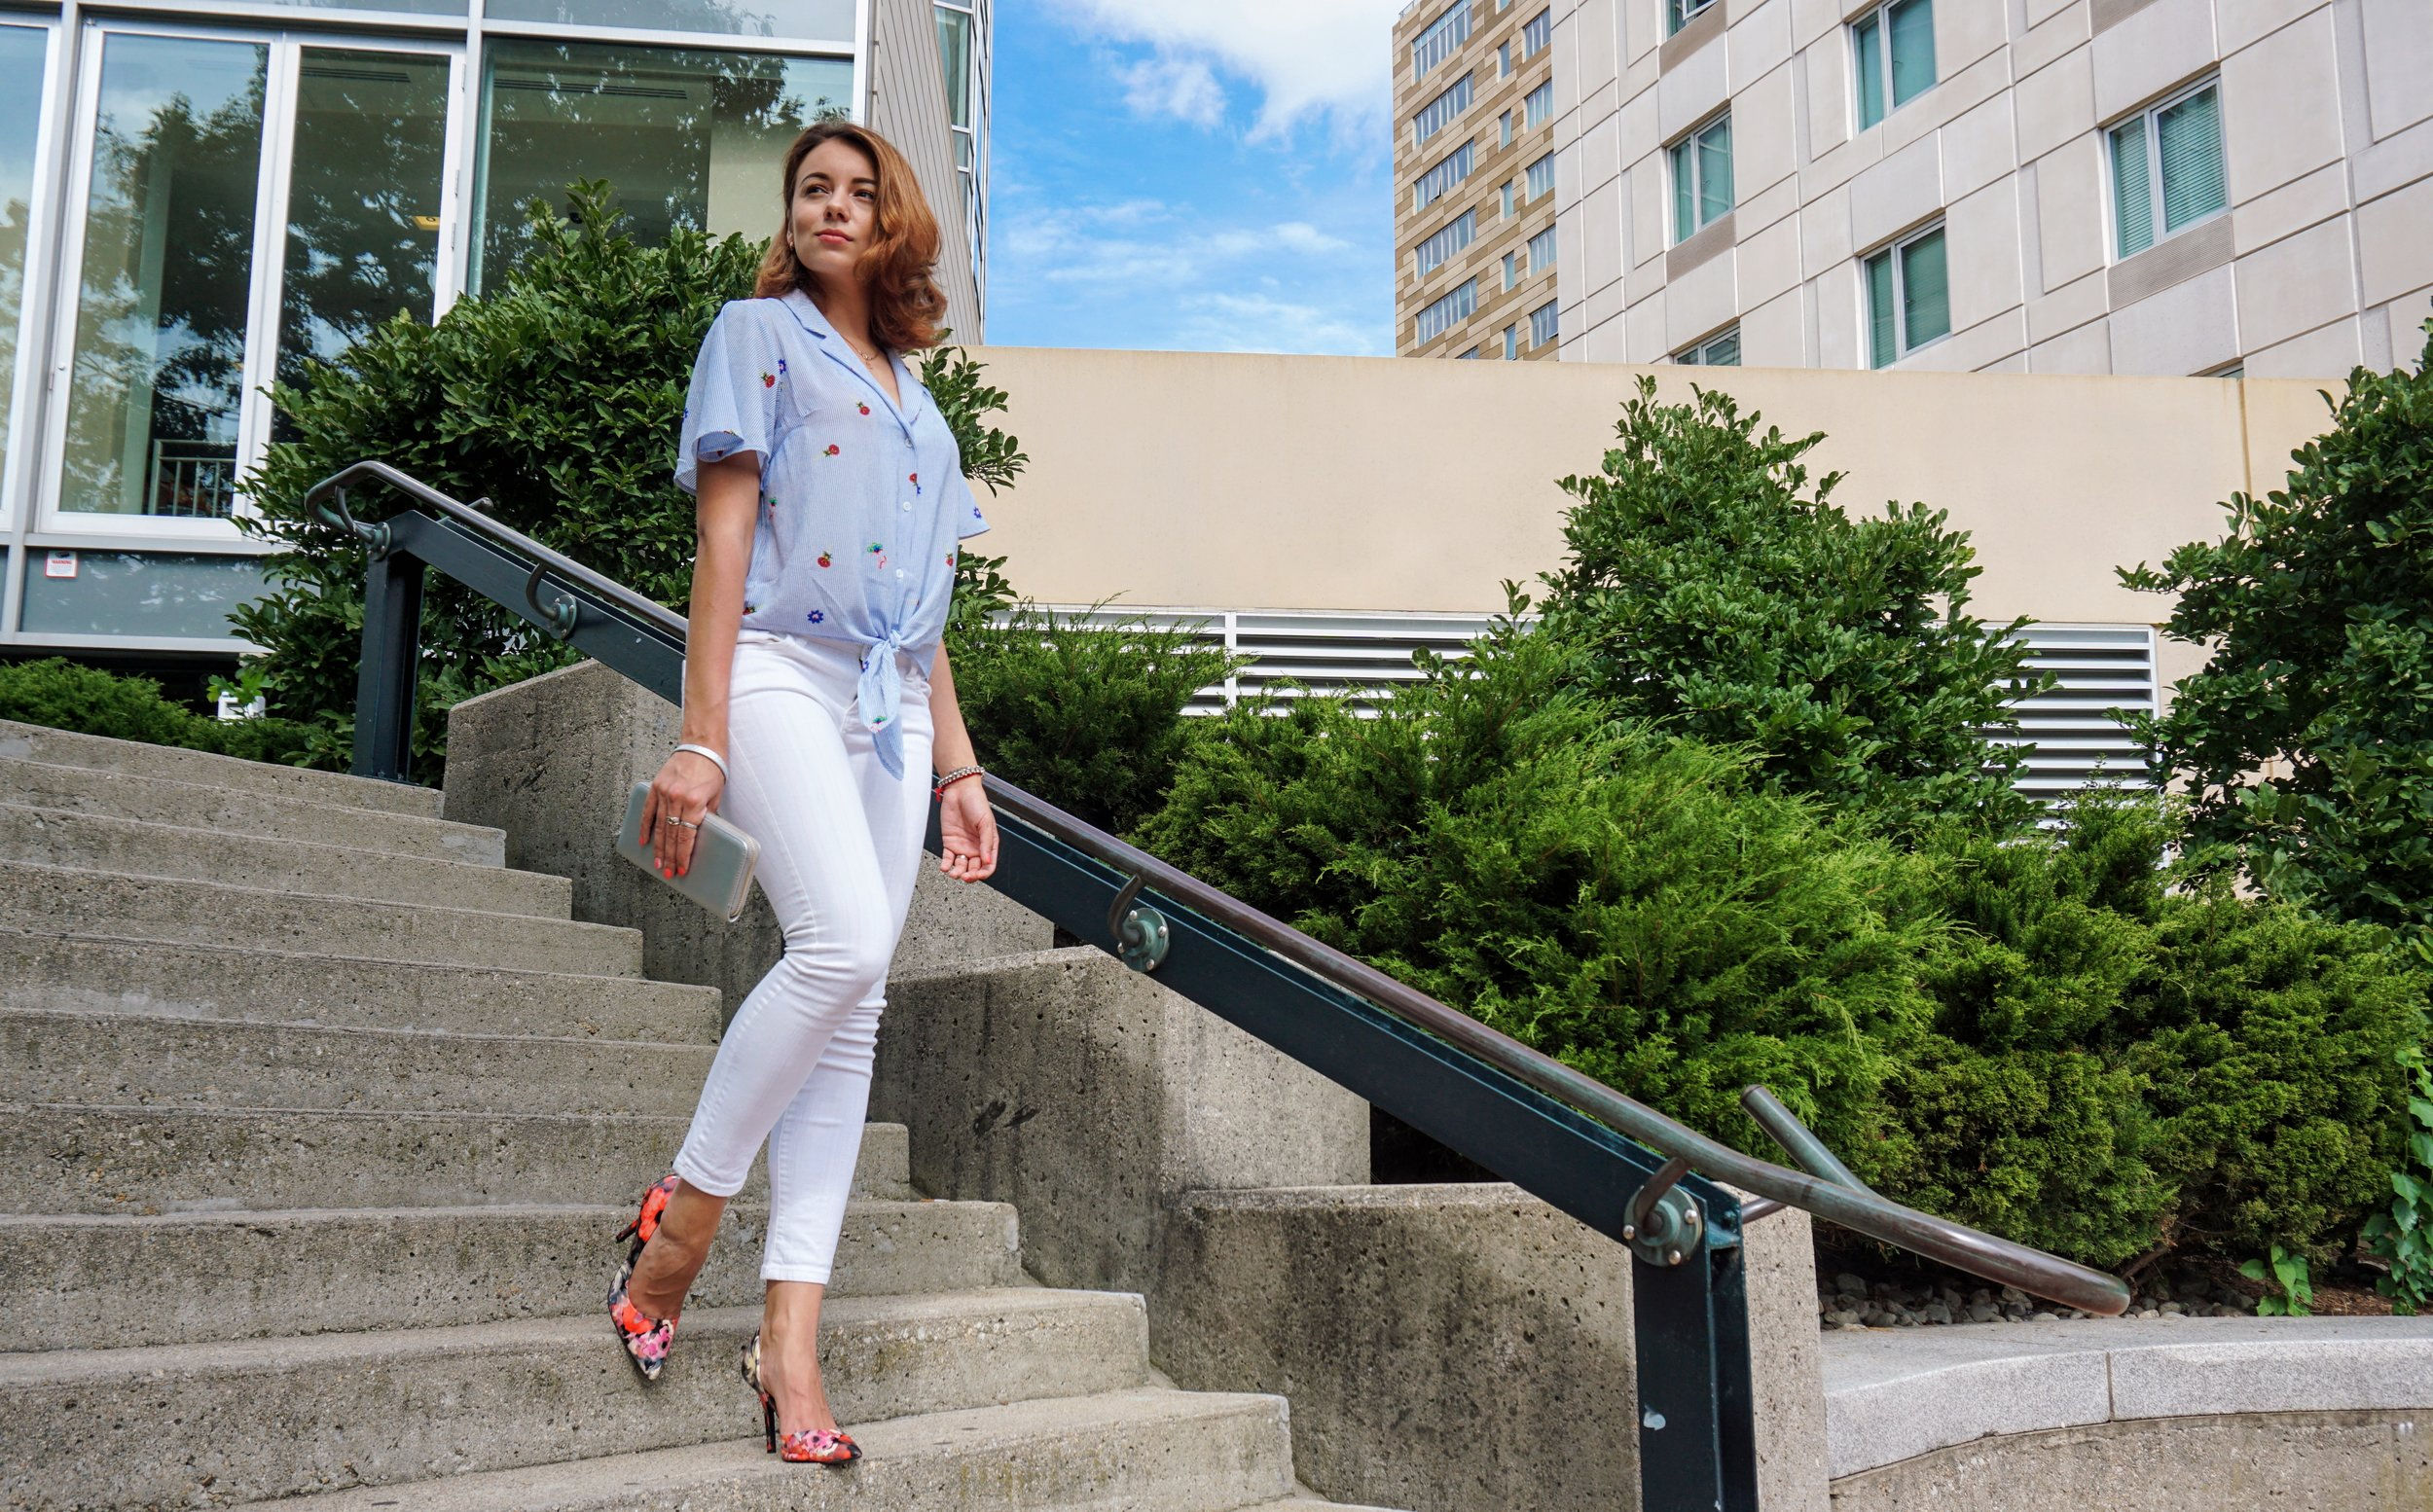 A fashion blogger walking down the stair in a summer white and blue outfit.